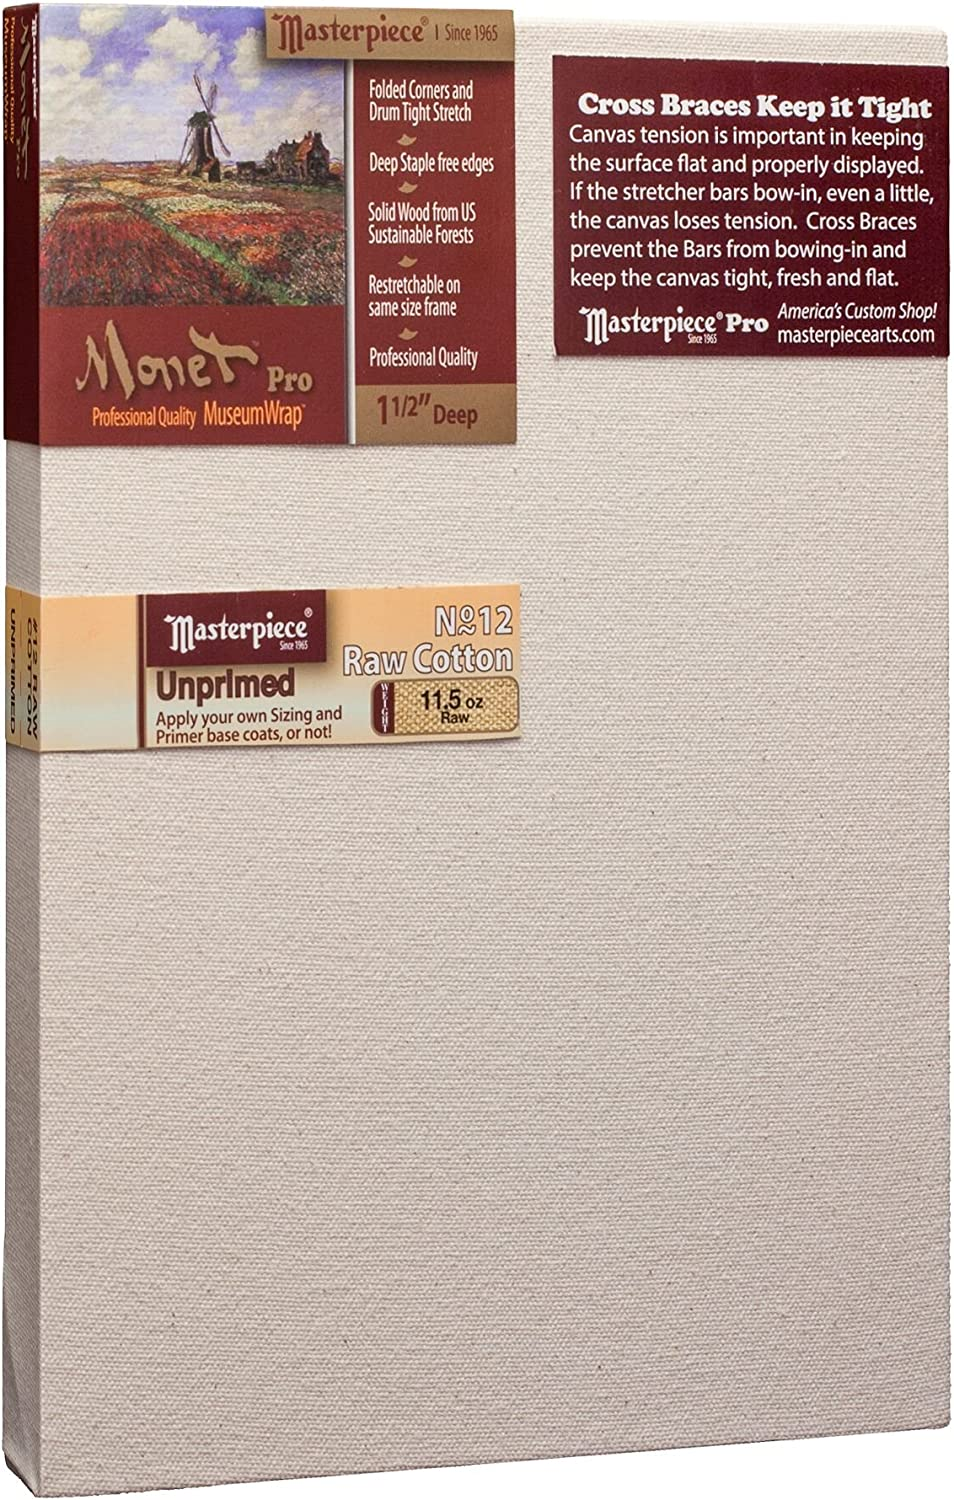 Masterpiece Artist Canvas MR-1329 Special price for a limited time Monet Pro x Max 71% OFF 2 1-1 13